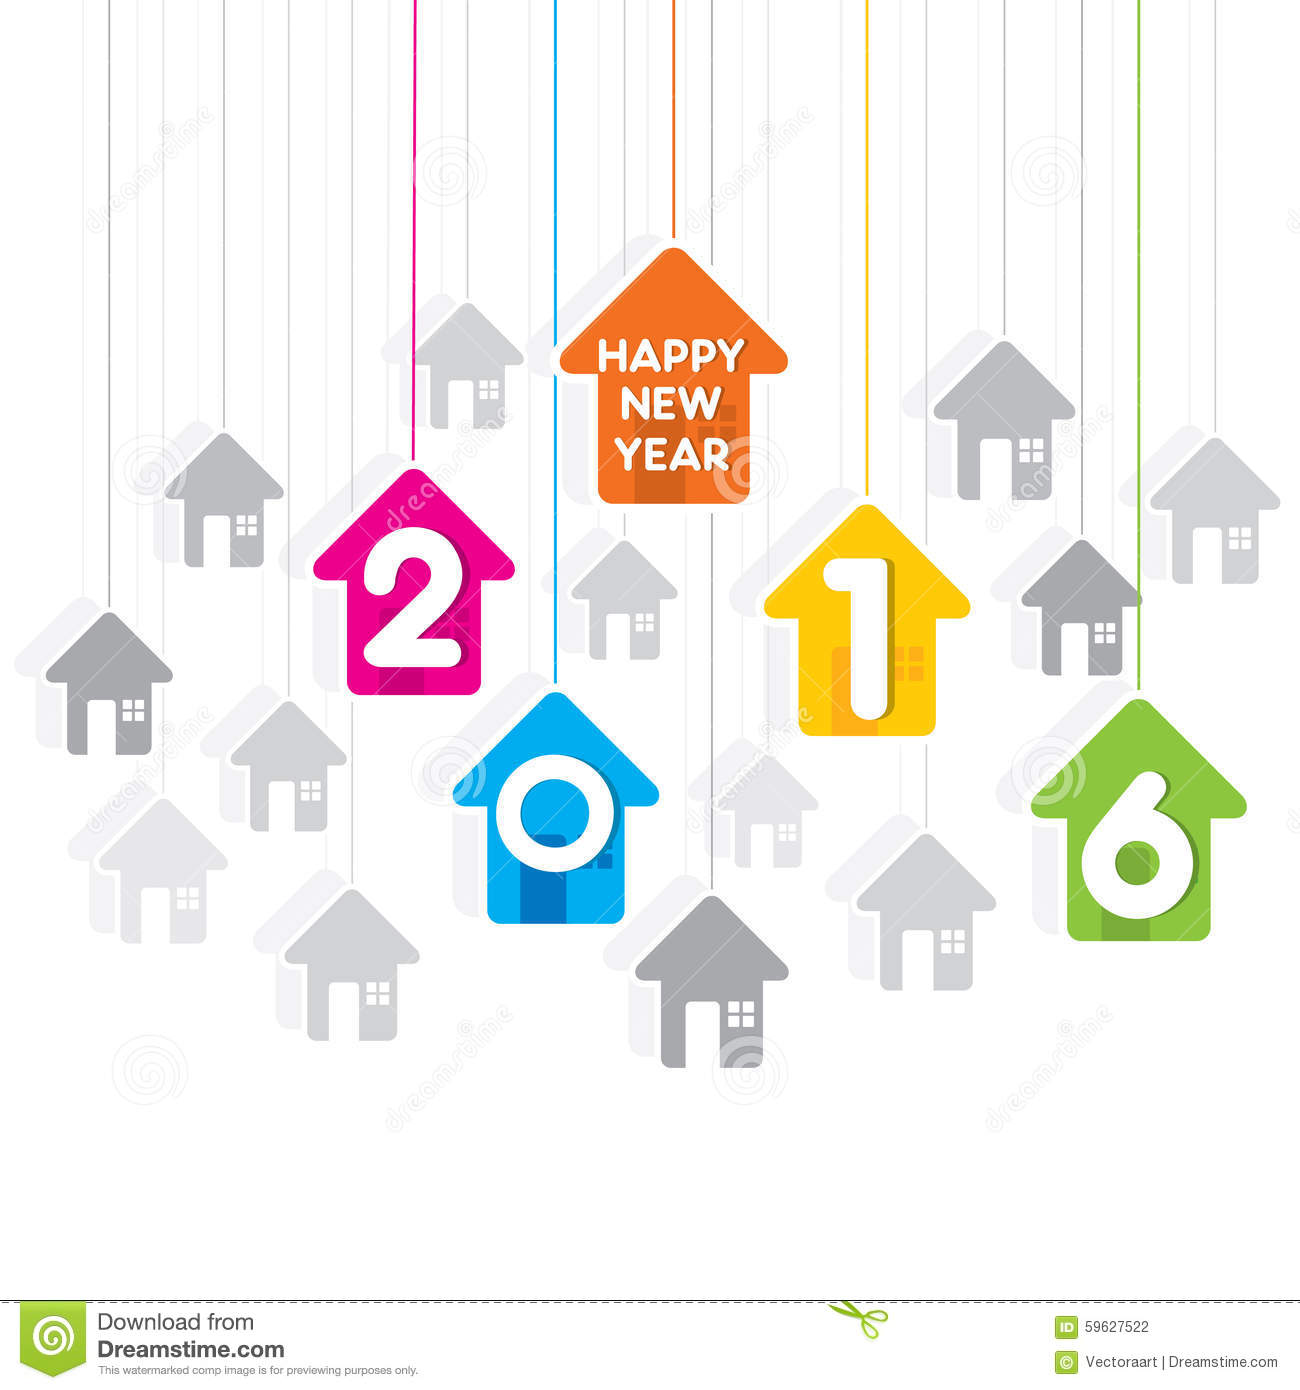 Happy new year 2016 design stock vector illustration of creative new year 2016 greeting design with house theme background m4hsunfo